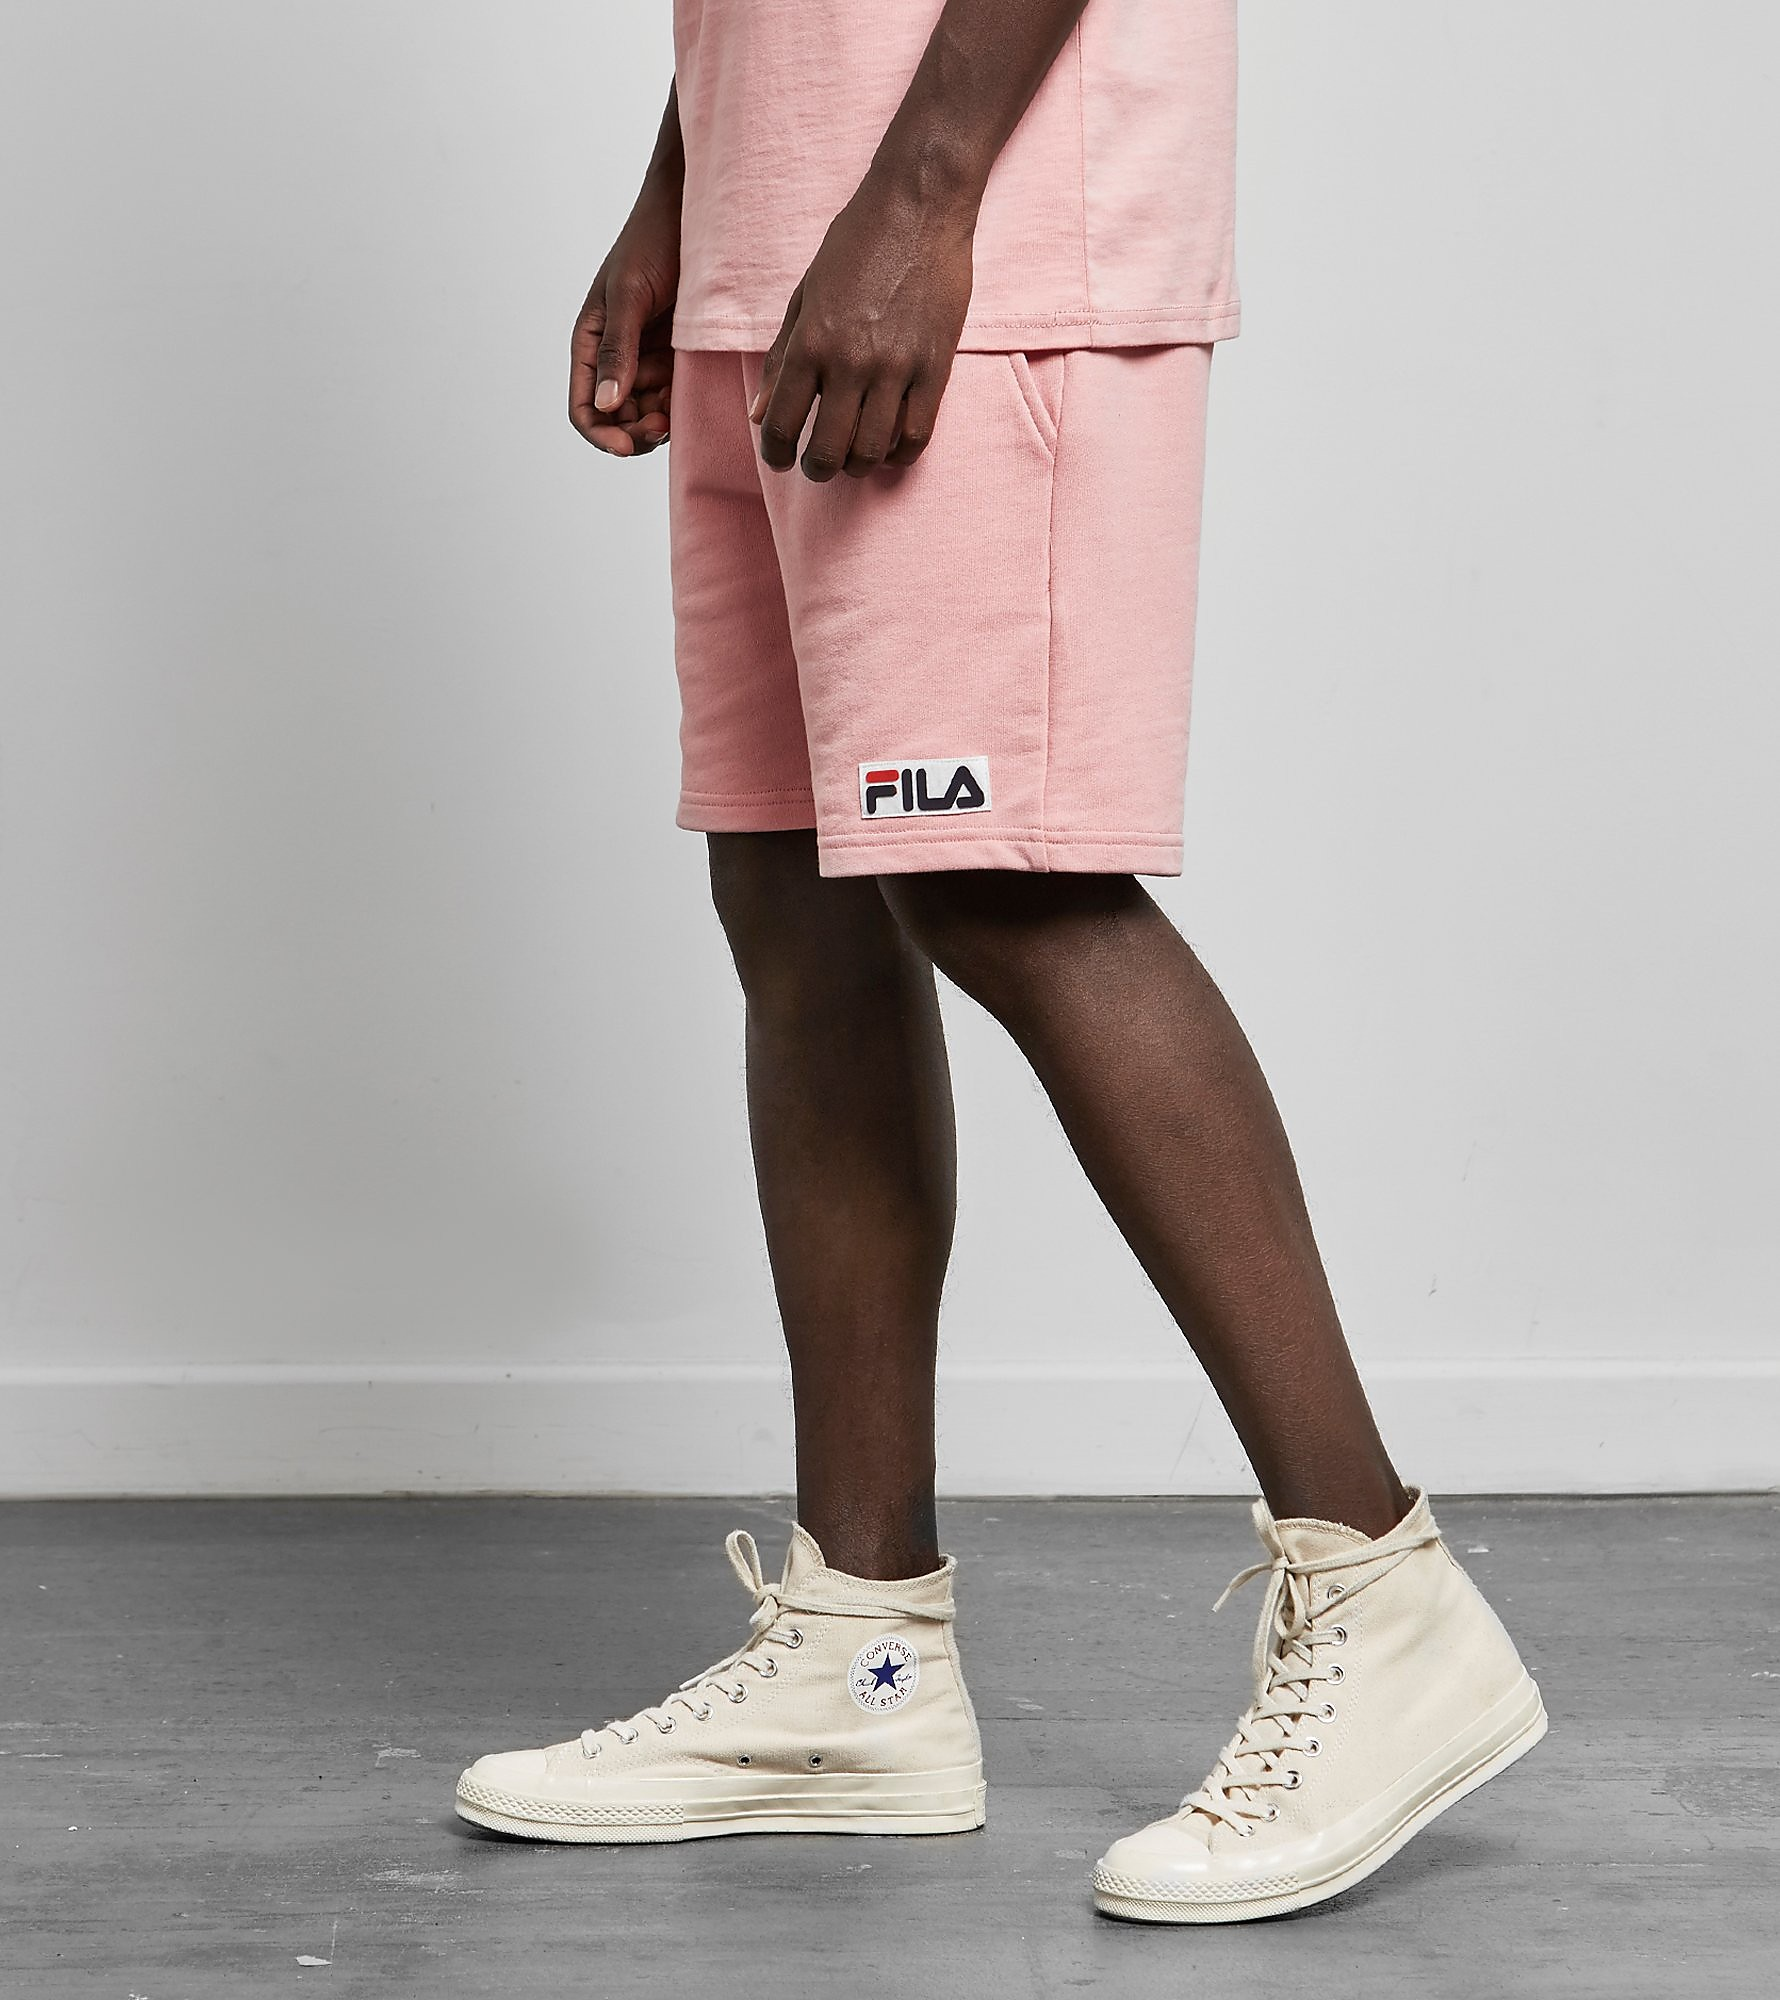 Fila Island Shorts - size? Exclusive